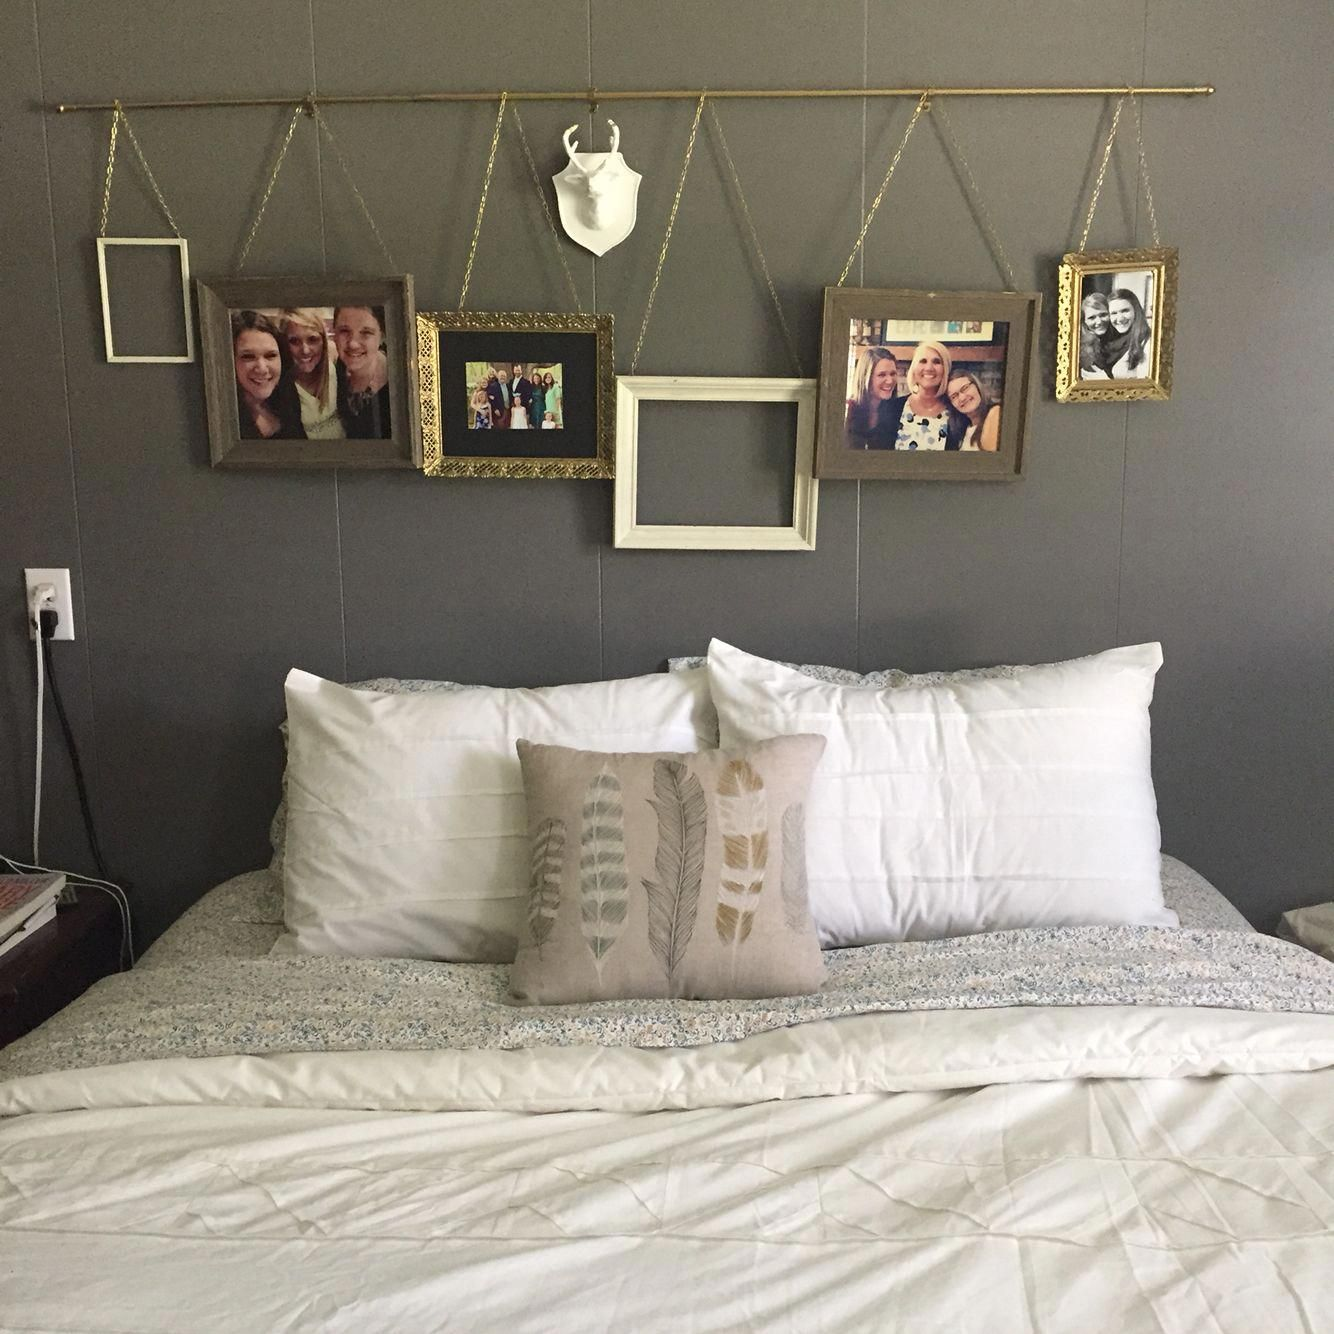 Above bed ideas. Hanging pictures from a curtain rod. Easy and